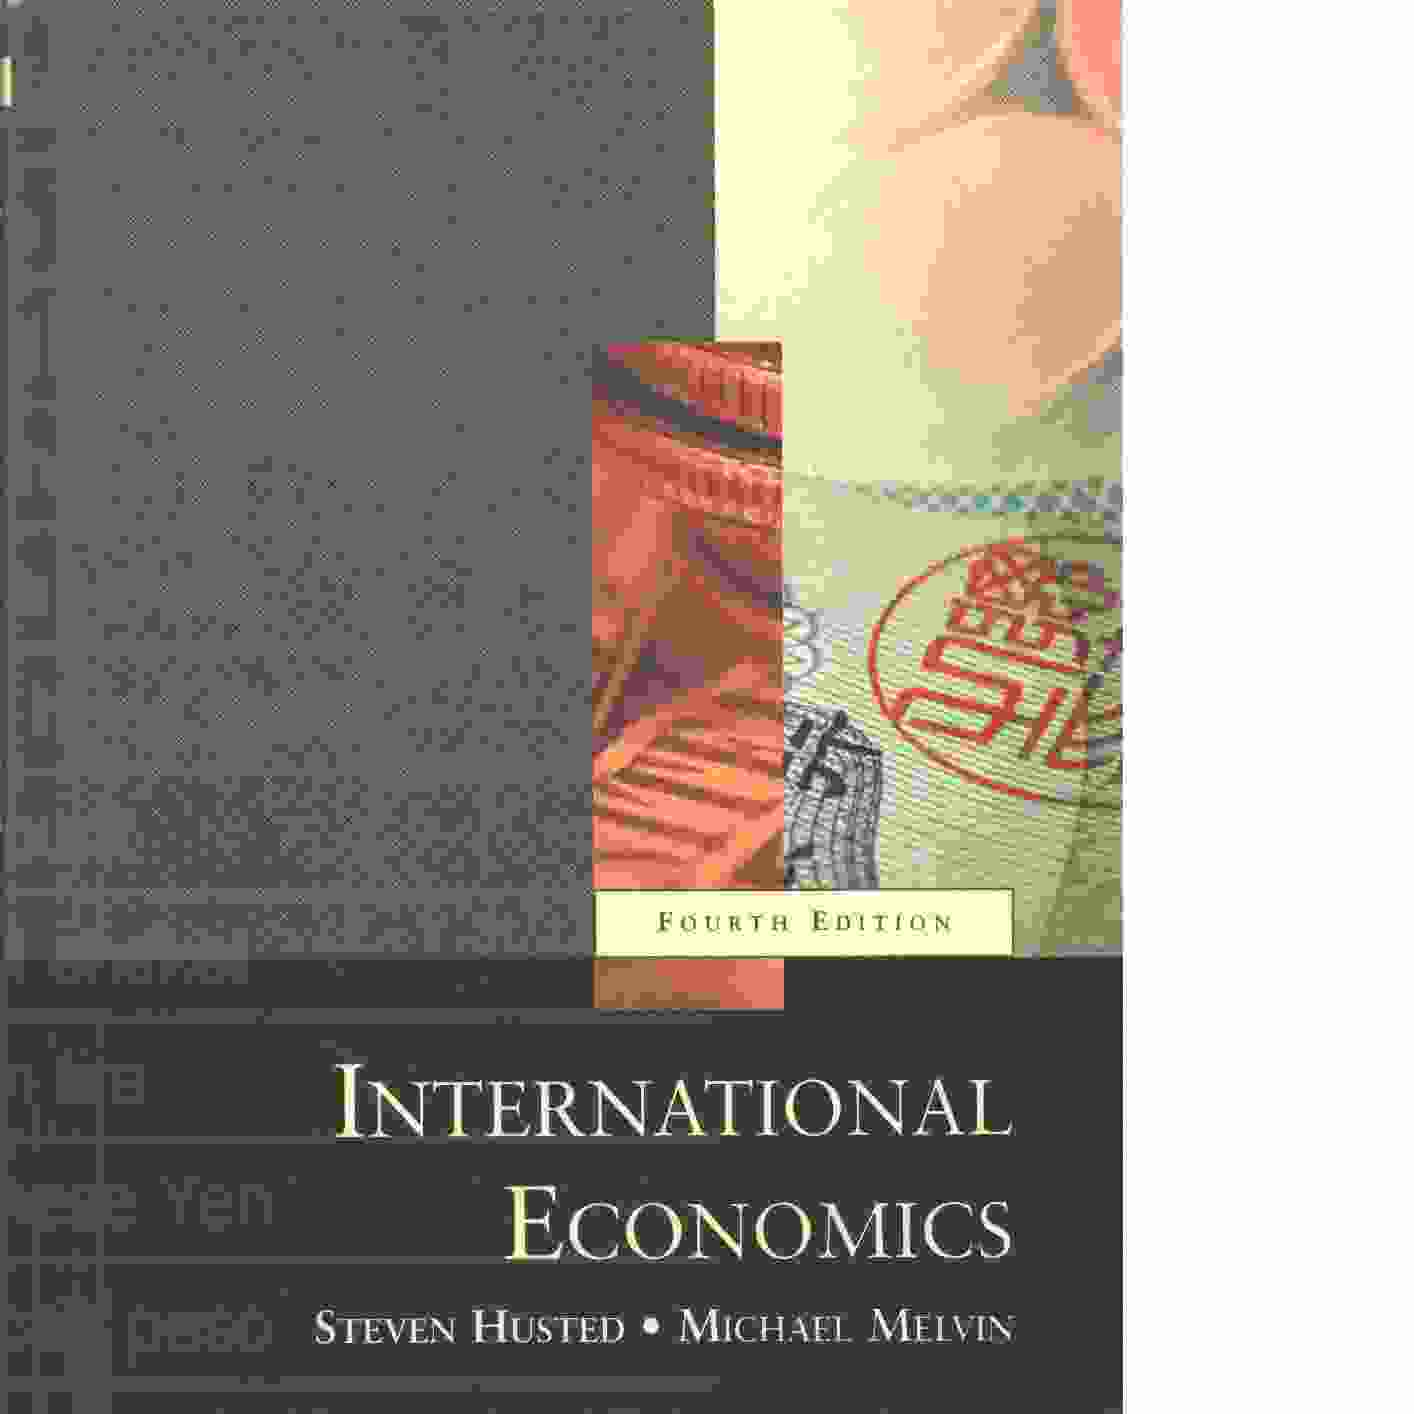 International economics - Husted, Steven L. och Melvin, Michael